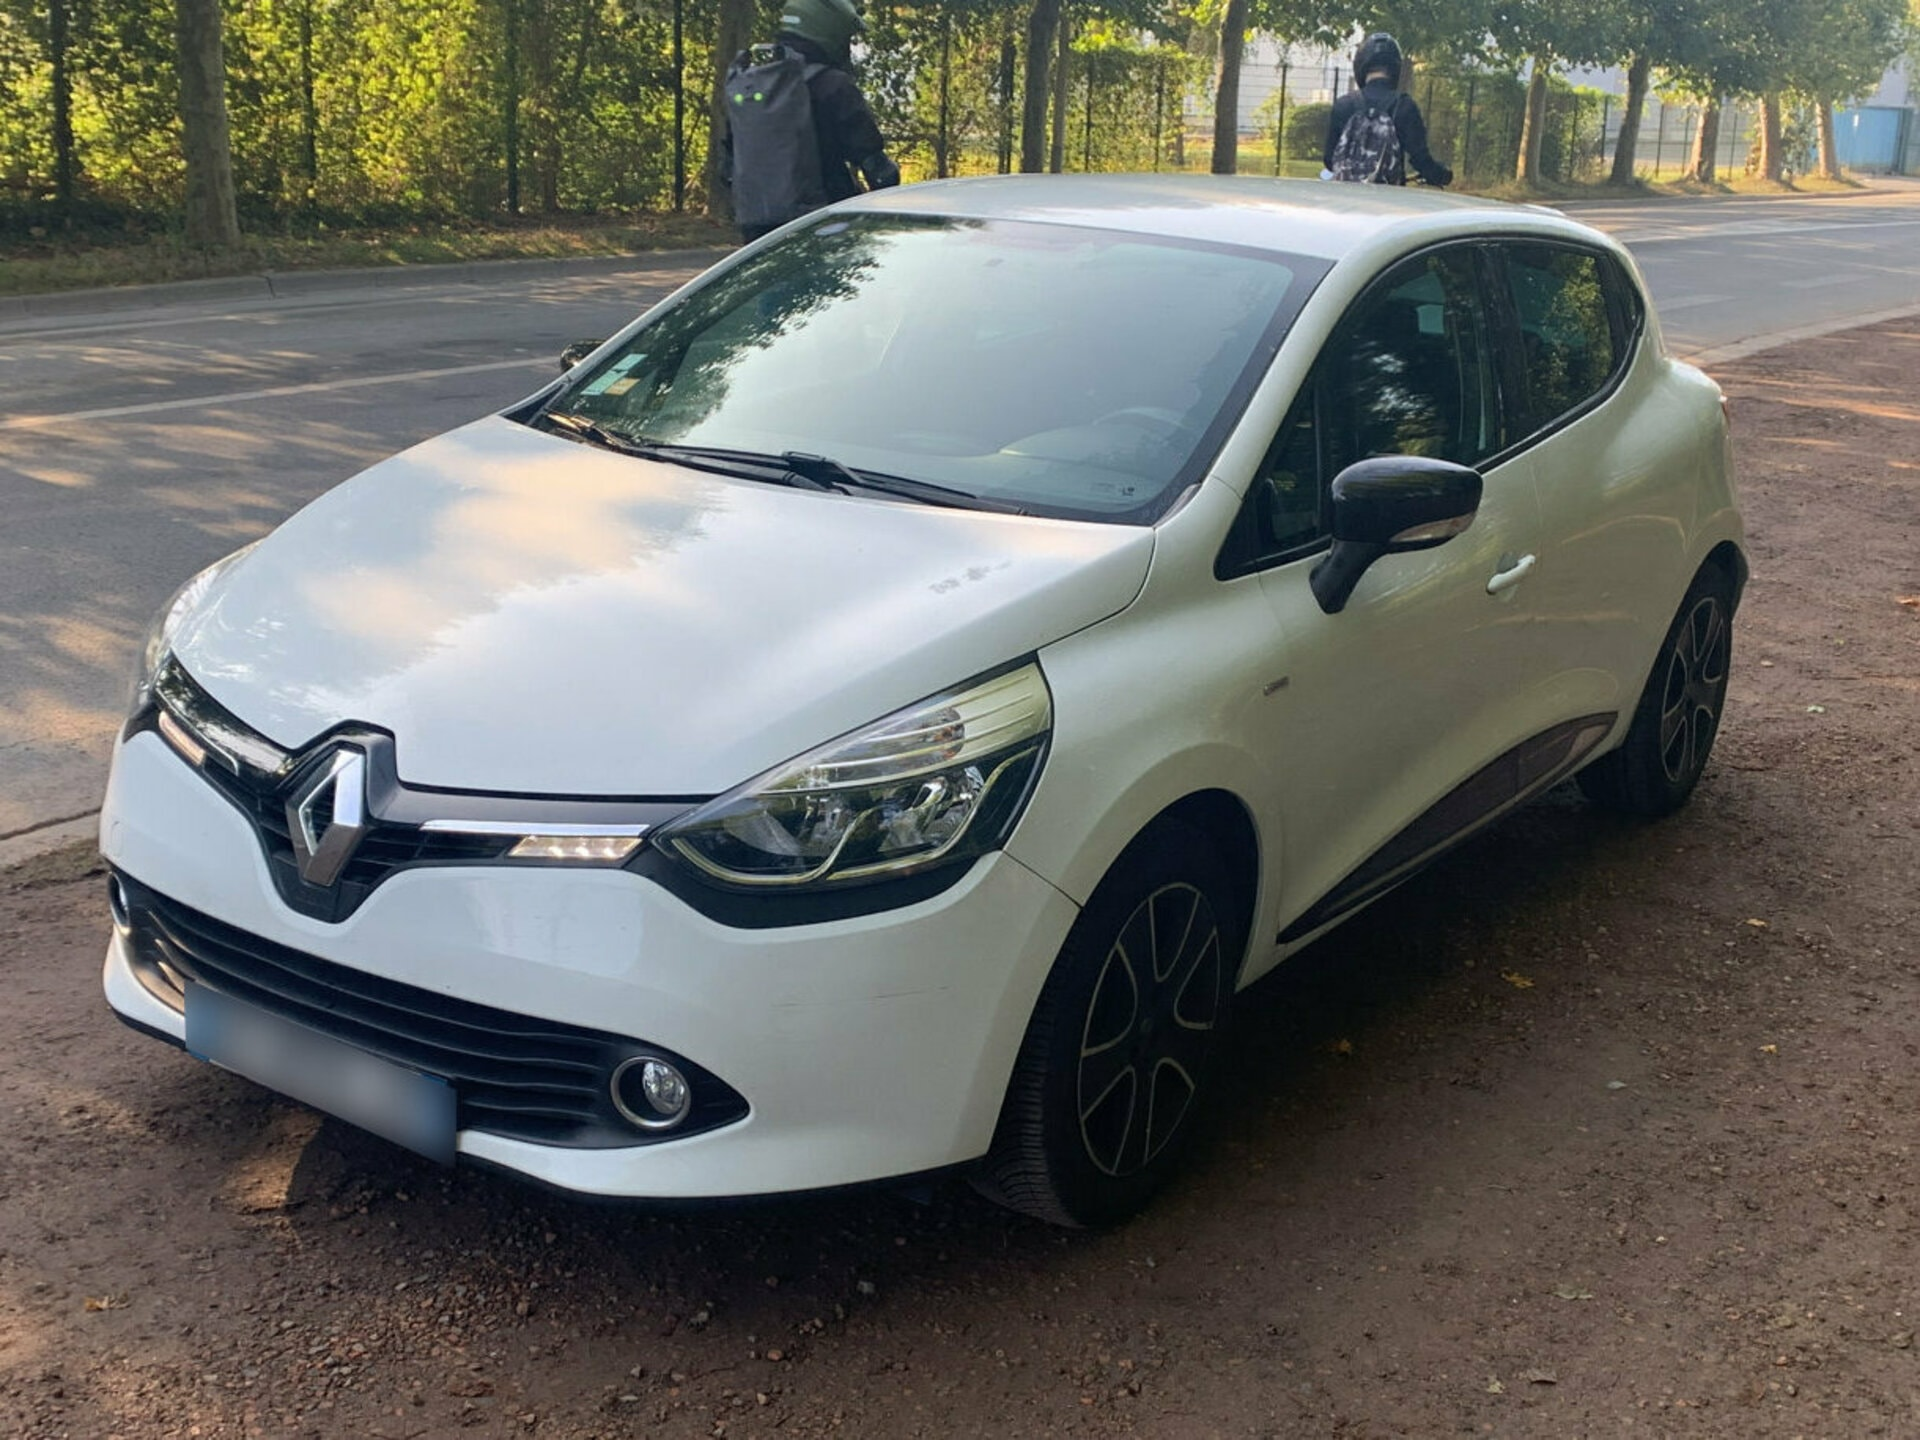 RENAULT CLIO 0.9 TCE 90 ENERGY LIMITED - Carventura